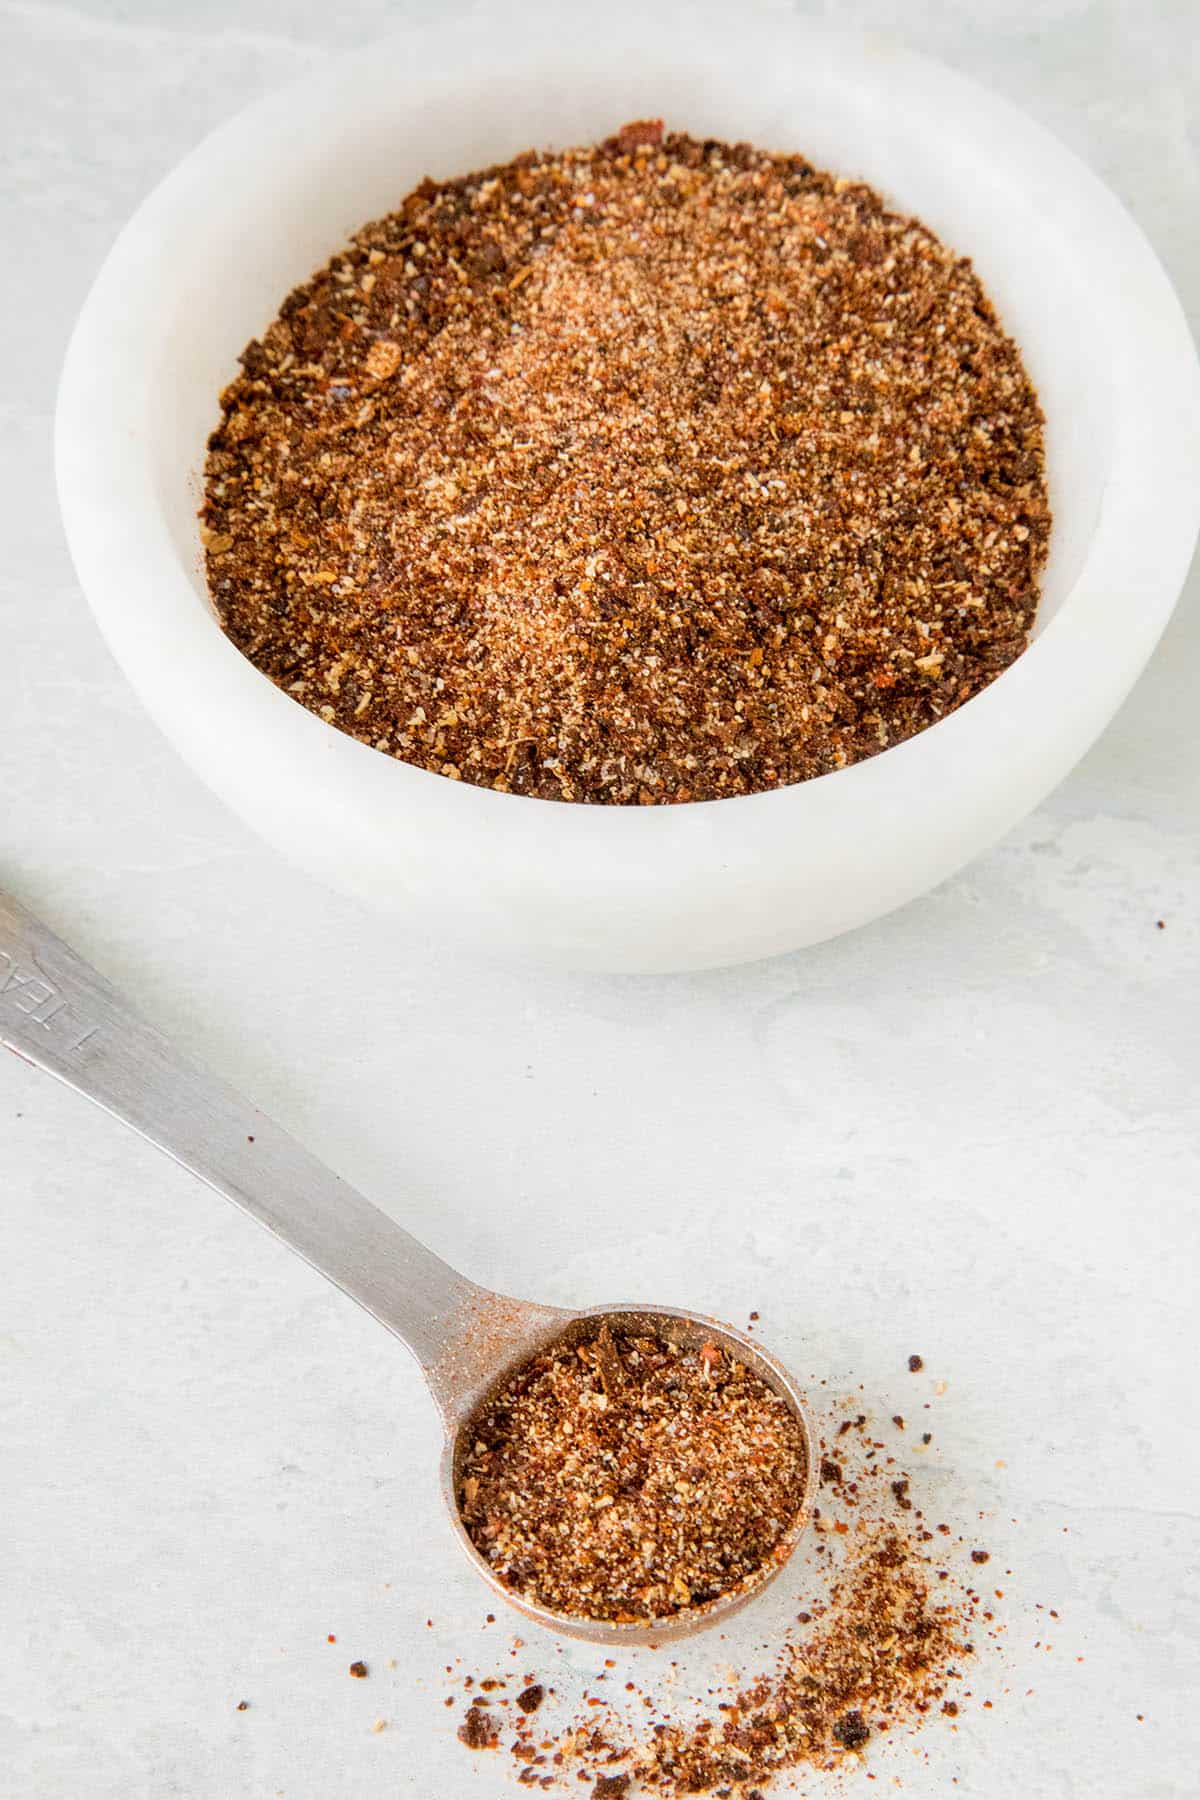 Homemade Chili Powder - Recipe